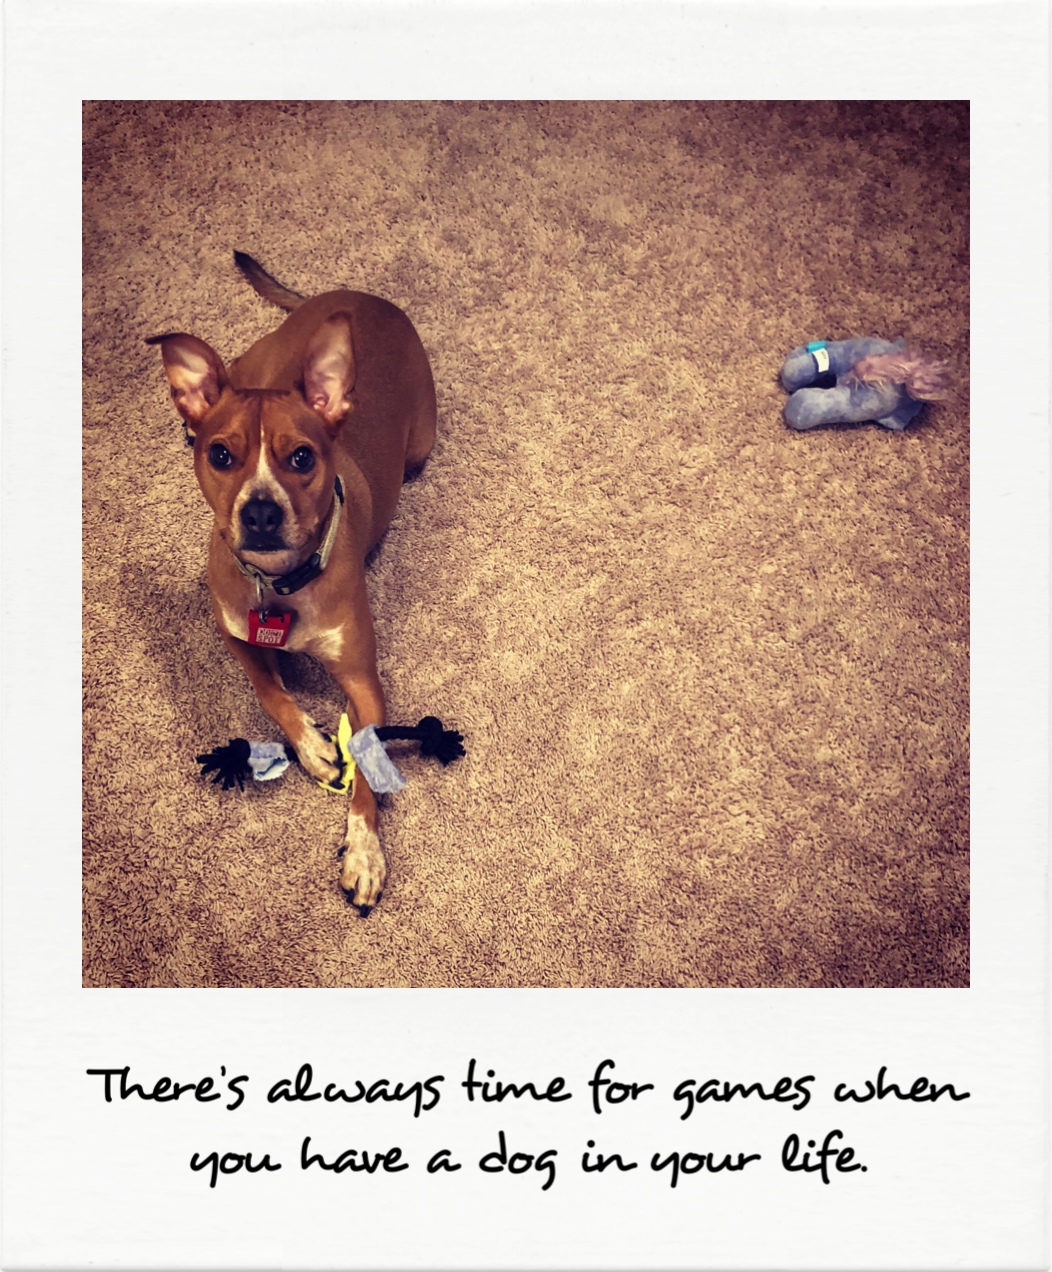 There's always time for games when you have a dog in your life